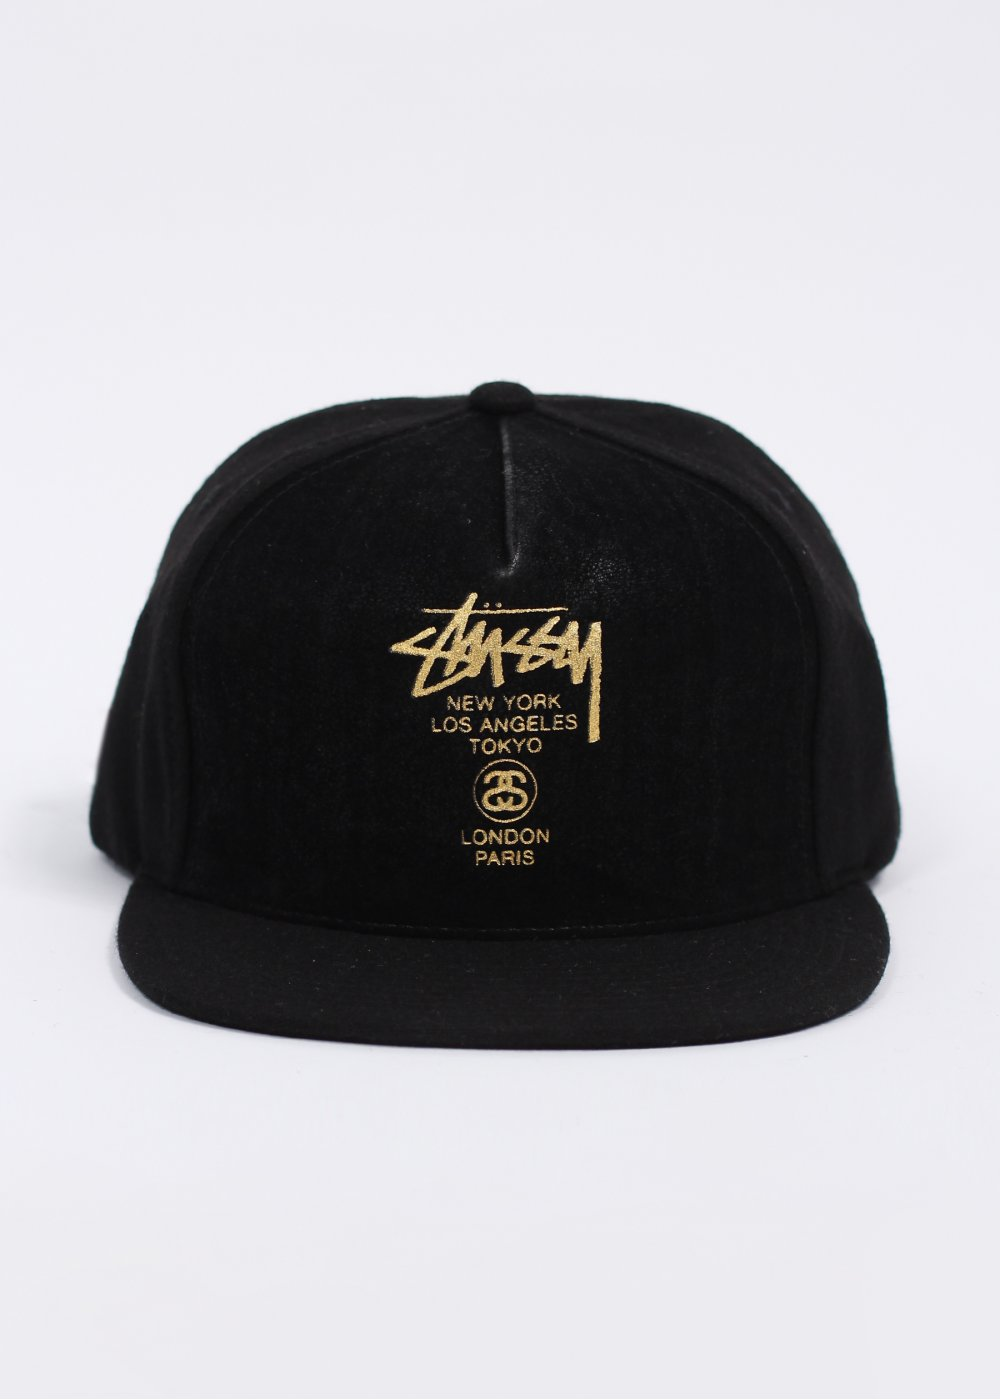 Stussy World Tour Leather Front Ball Cap - Black 374fc1896ab